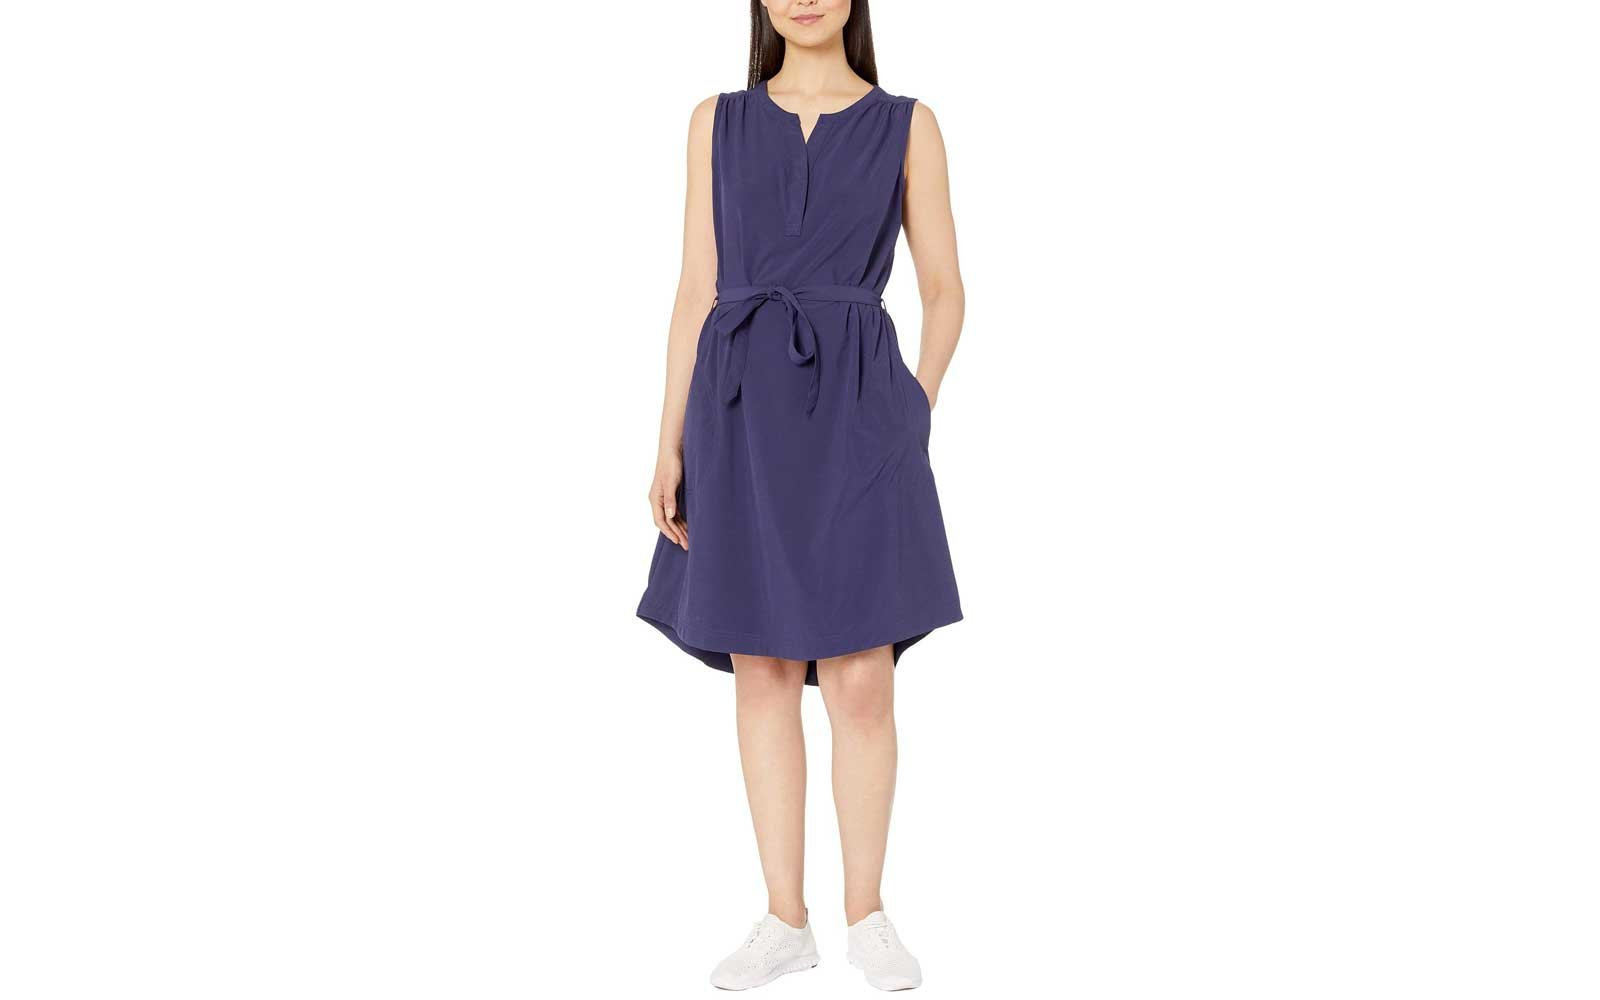 d7d6324e81f0a The Best Sun-protective Clothing for Women — Dresses, Leggings, and ...